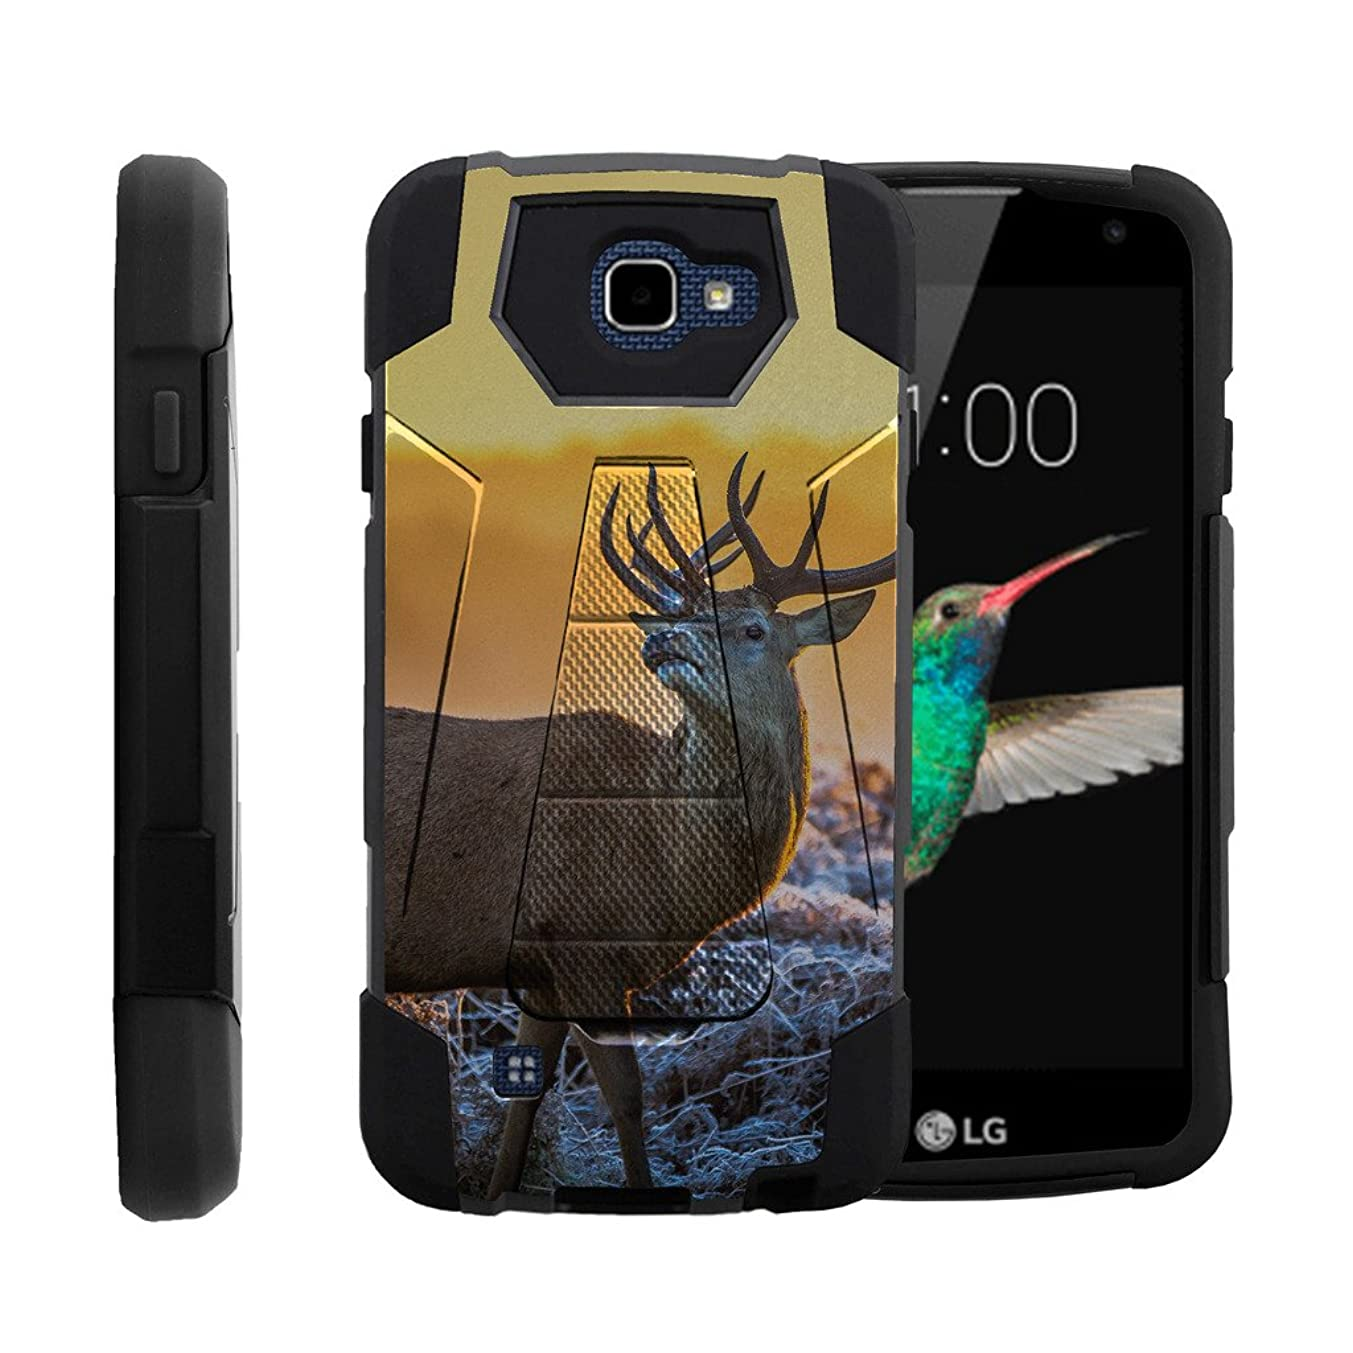 MINITURTLE Case Compatible w/LG K4 |Optimus Zone 3 Case|LG Spree|LG Rebel Case, Heavy Duty Silicone Gel and PC Phone Cover w/Unique Hunting Gear Design, Winter Deer